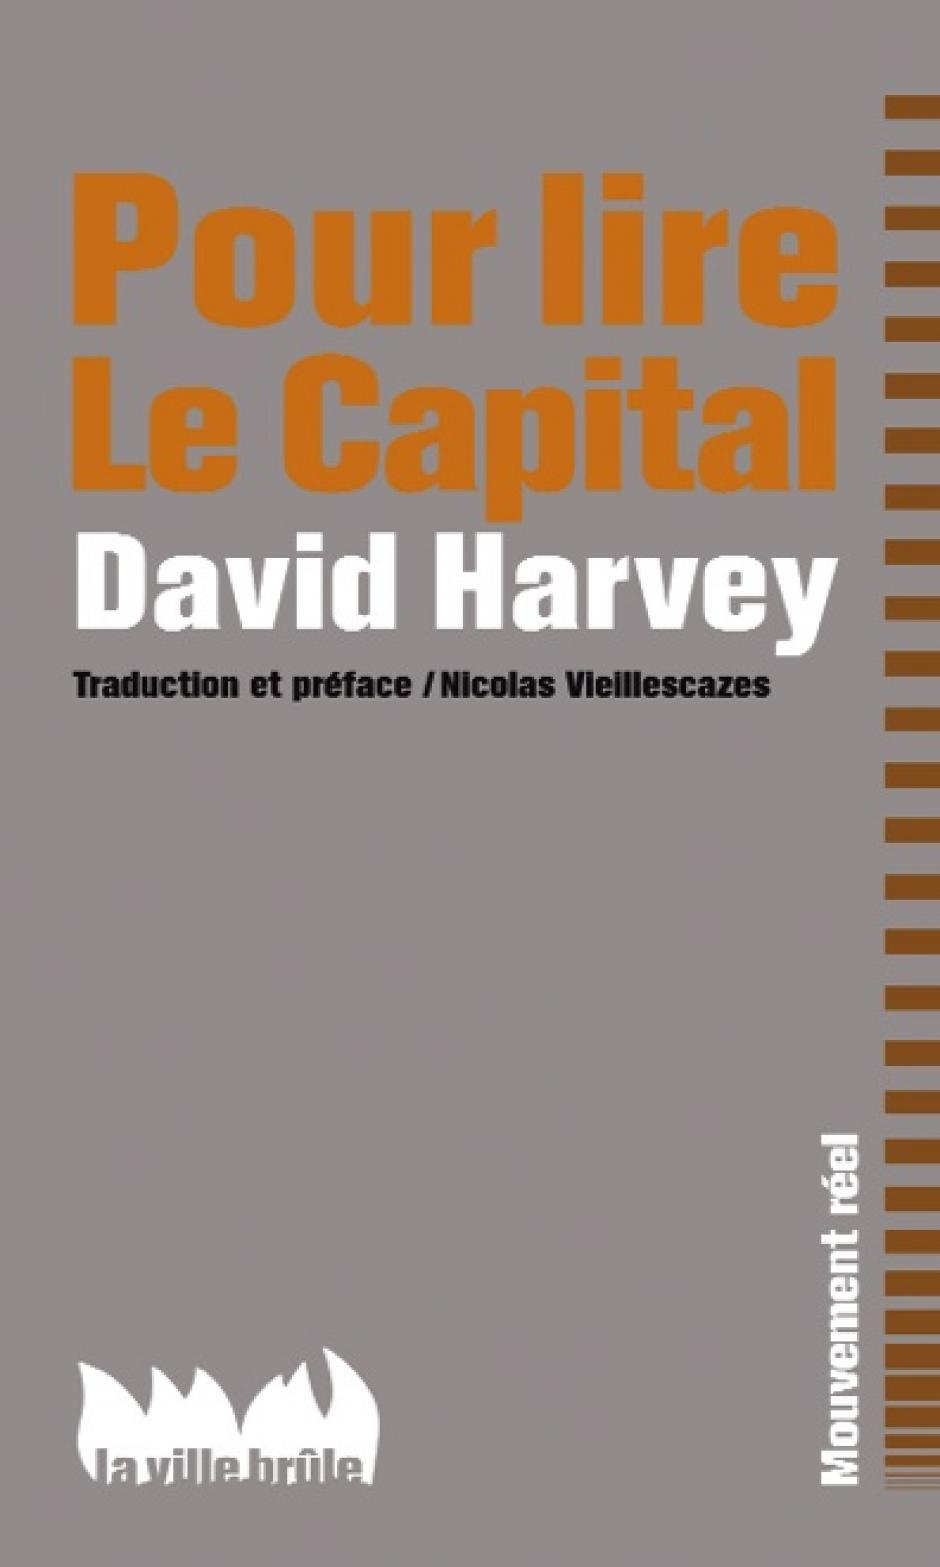 Le Capital à la lettre, David Harvey*